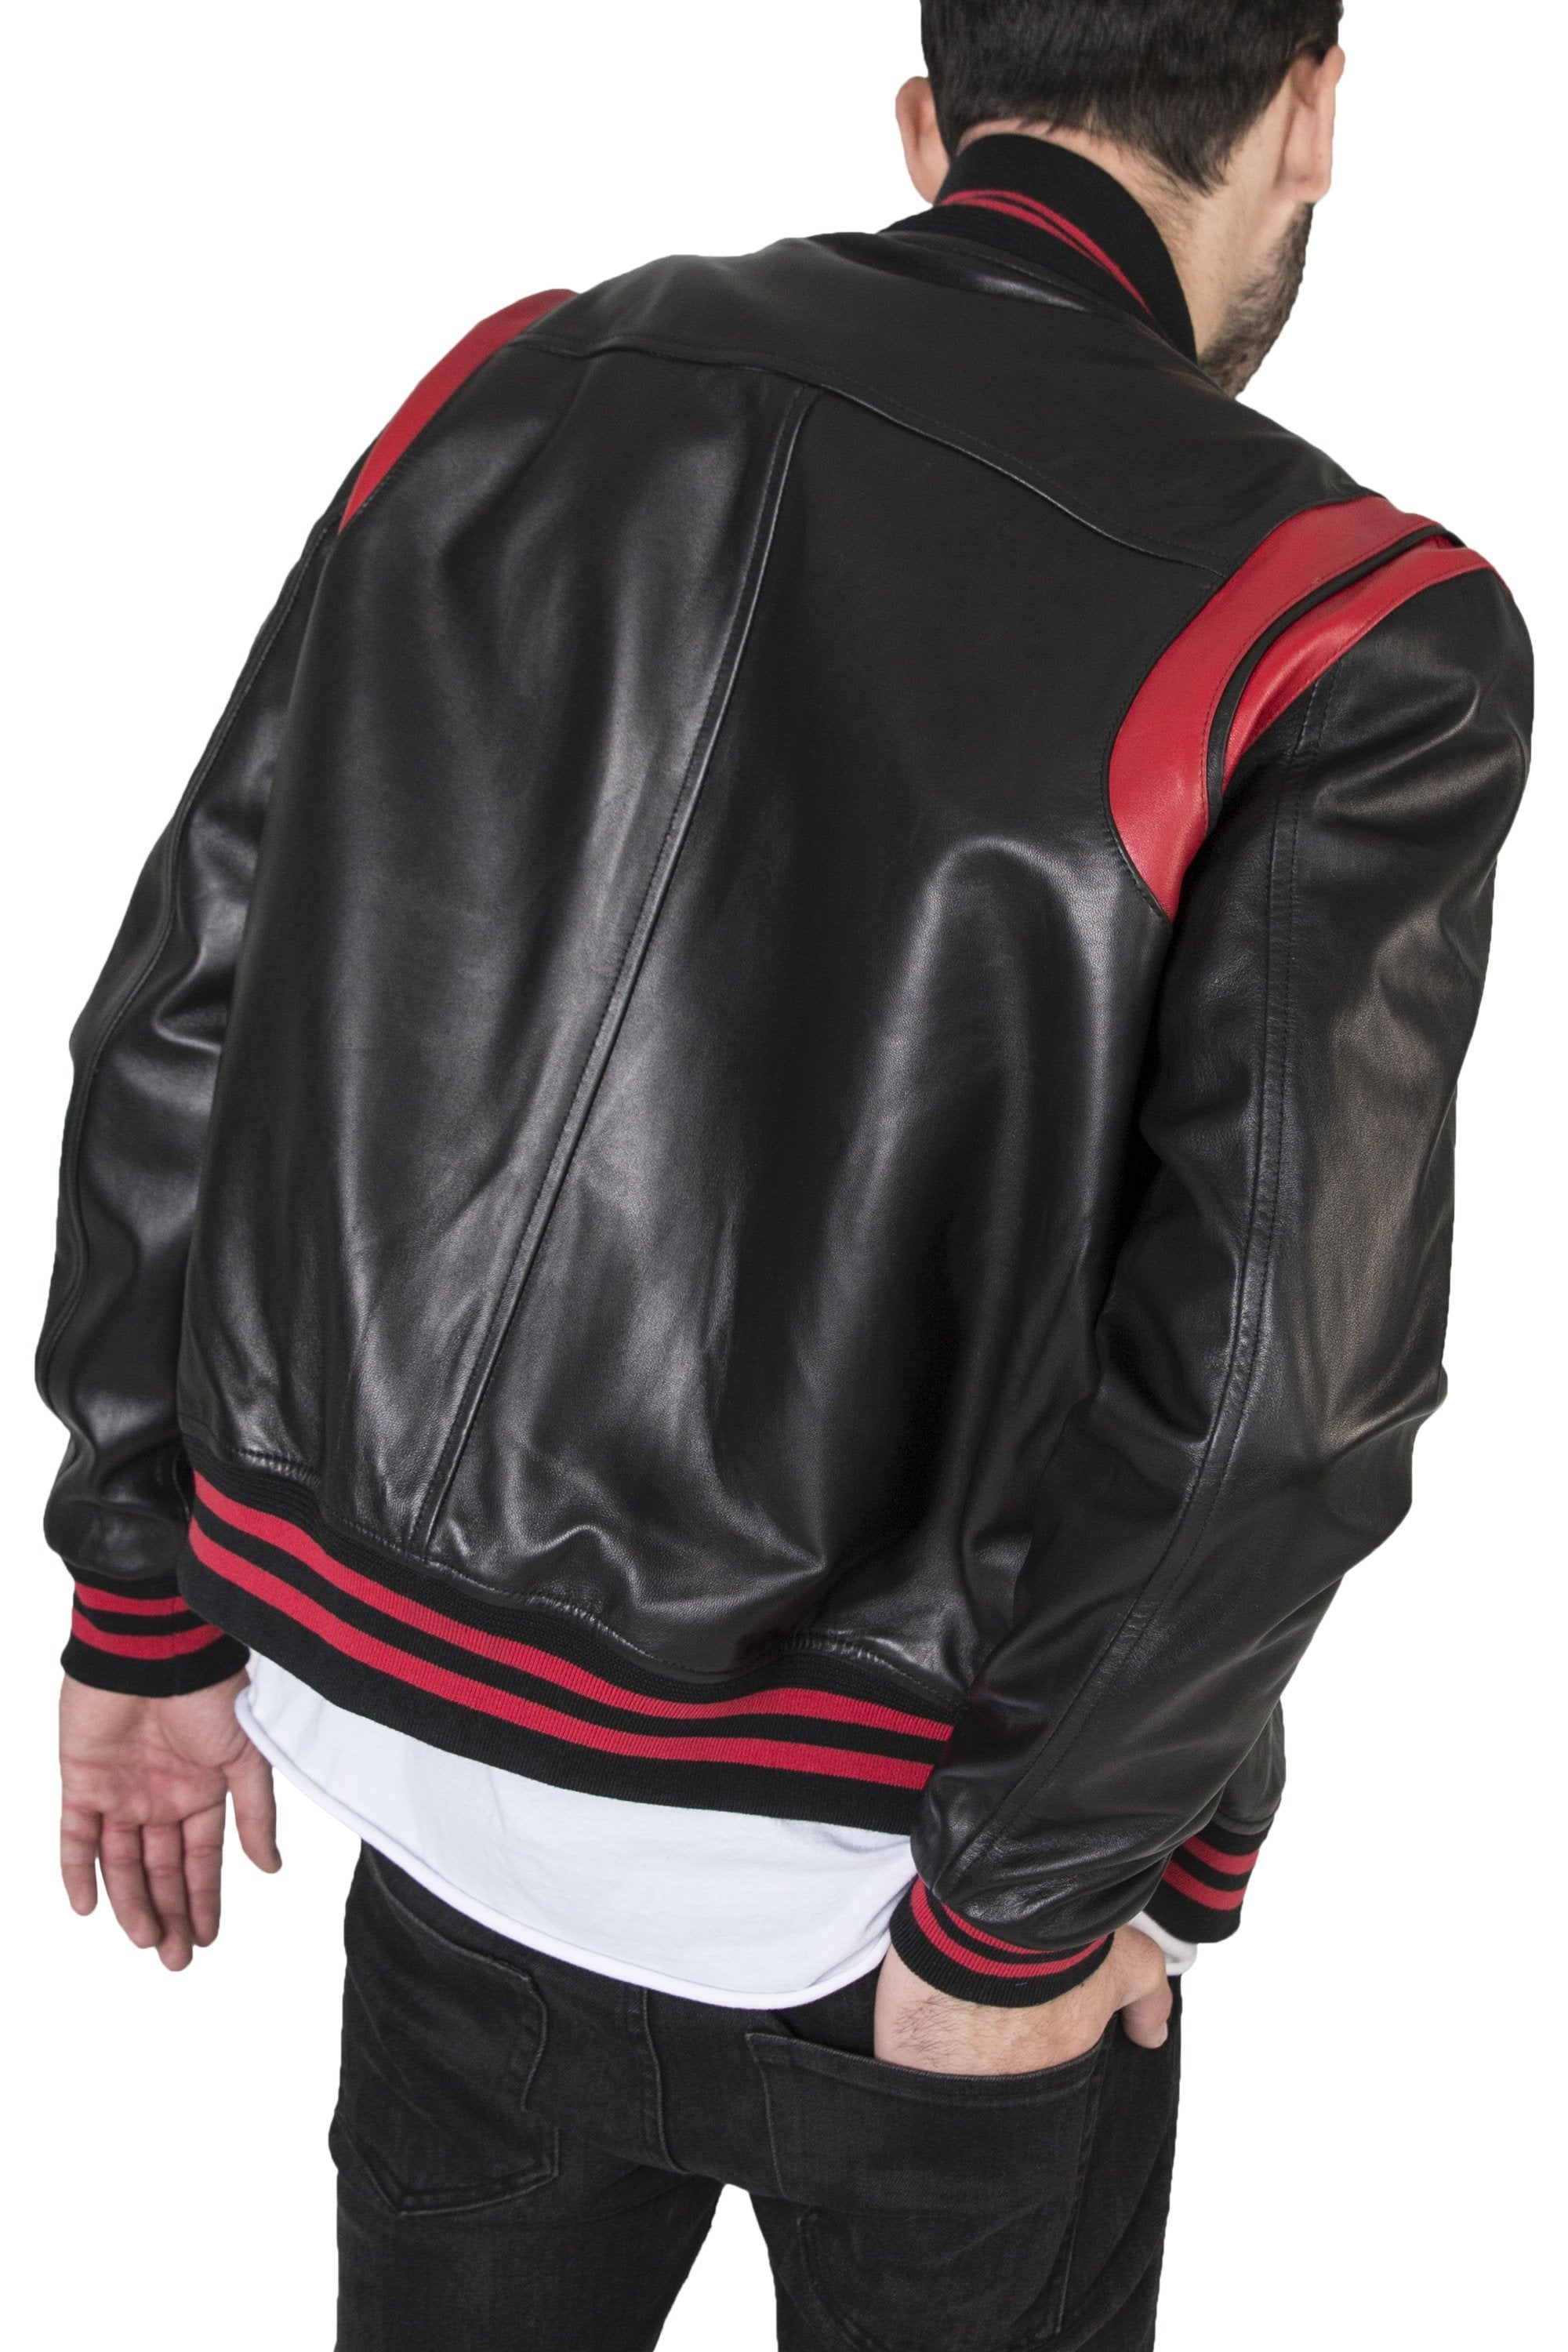 No 1 Varsity Black Red The Assembly Of Leather Shop Now Lac